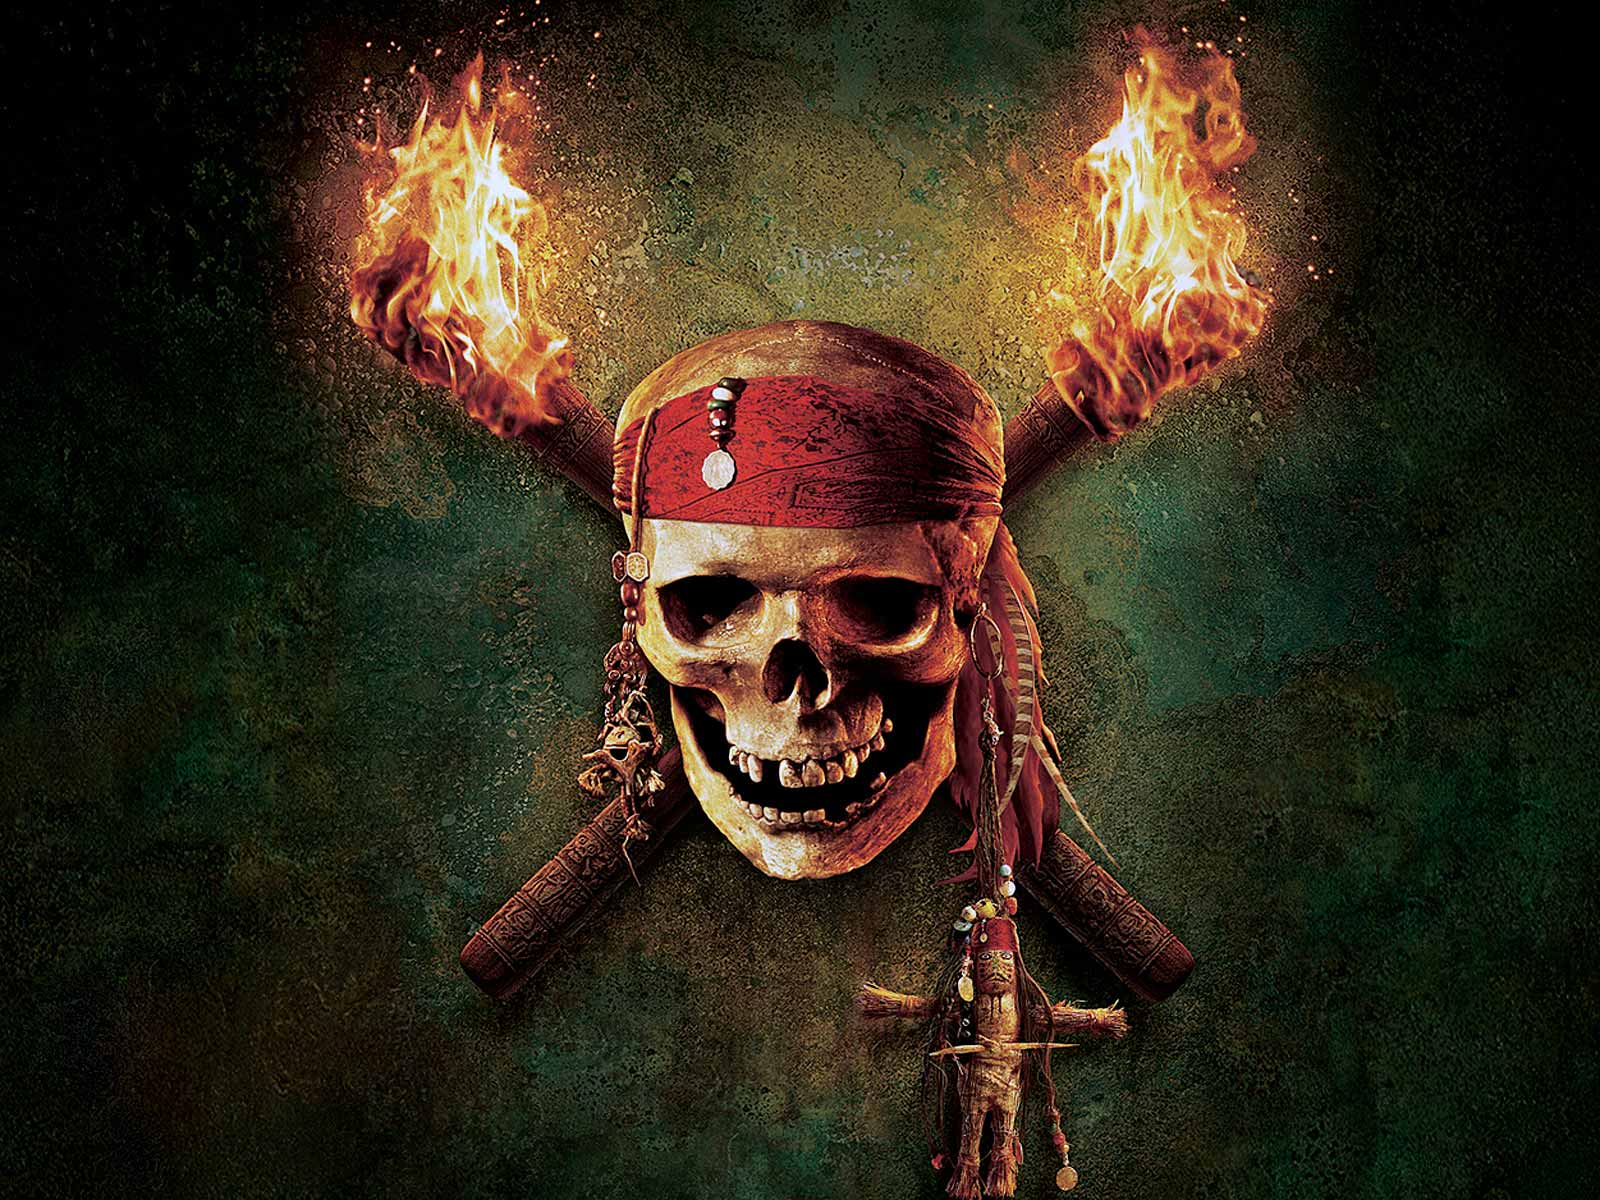 http://3.bp.blogspot.com/_4IsrUoO6T68/TS4PlO7uLSI/AAAAAAAABIc/HEs-GeFV6Bw/s1600/1287546157_1600x1200_pirates-of-the-caribbean-wallpaper.jpg